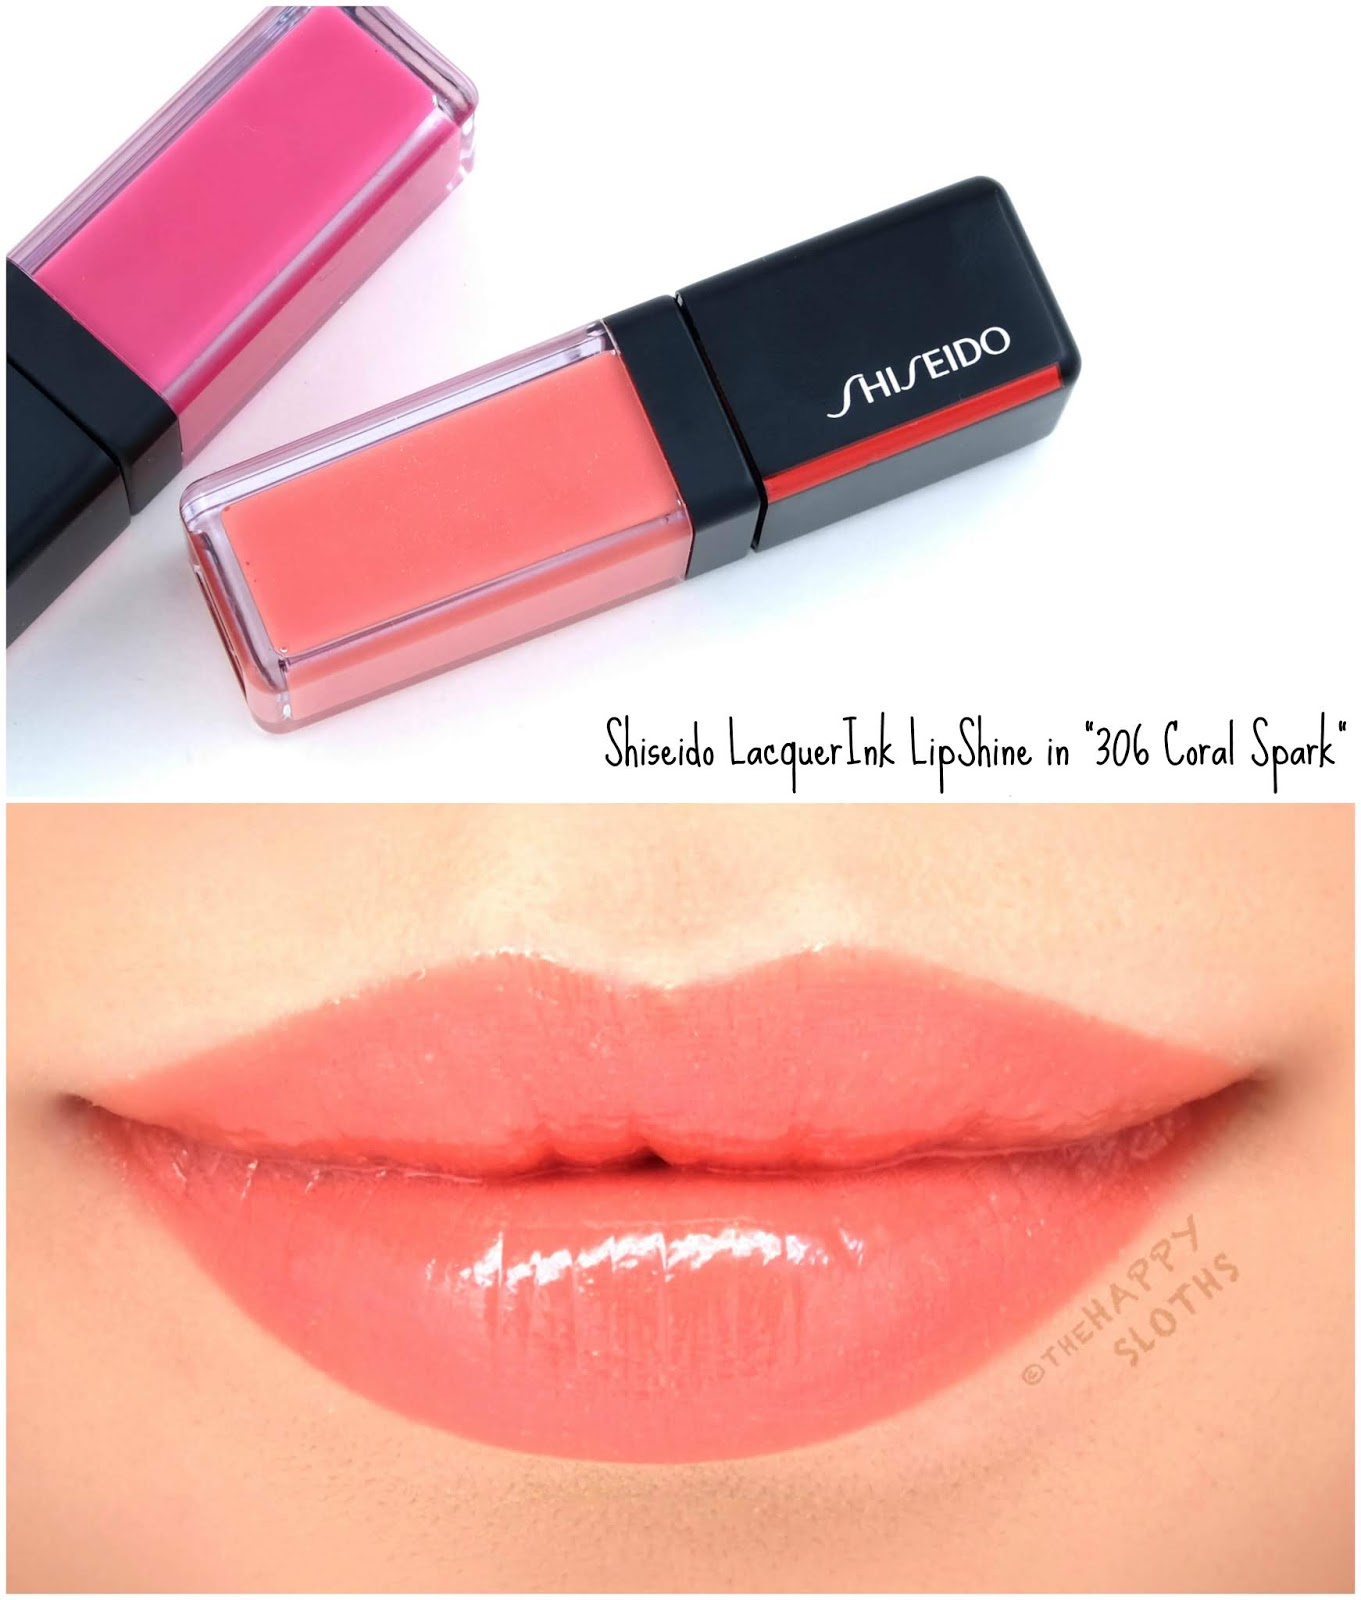 "Shiseido | LacquerInk LipShine in ""302 Coral Spark"": Review and Swatches"